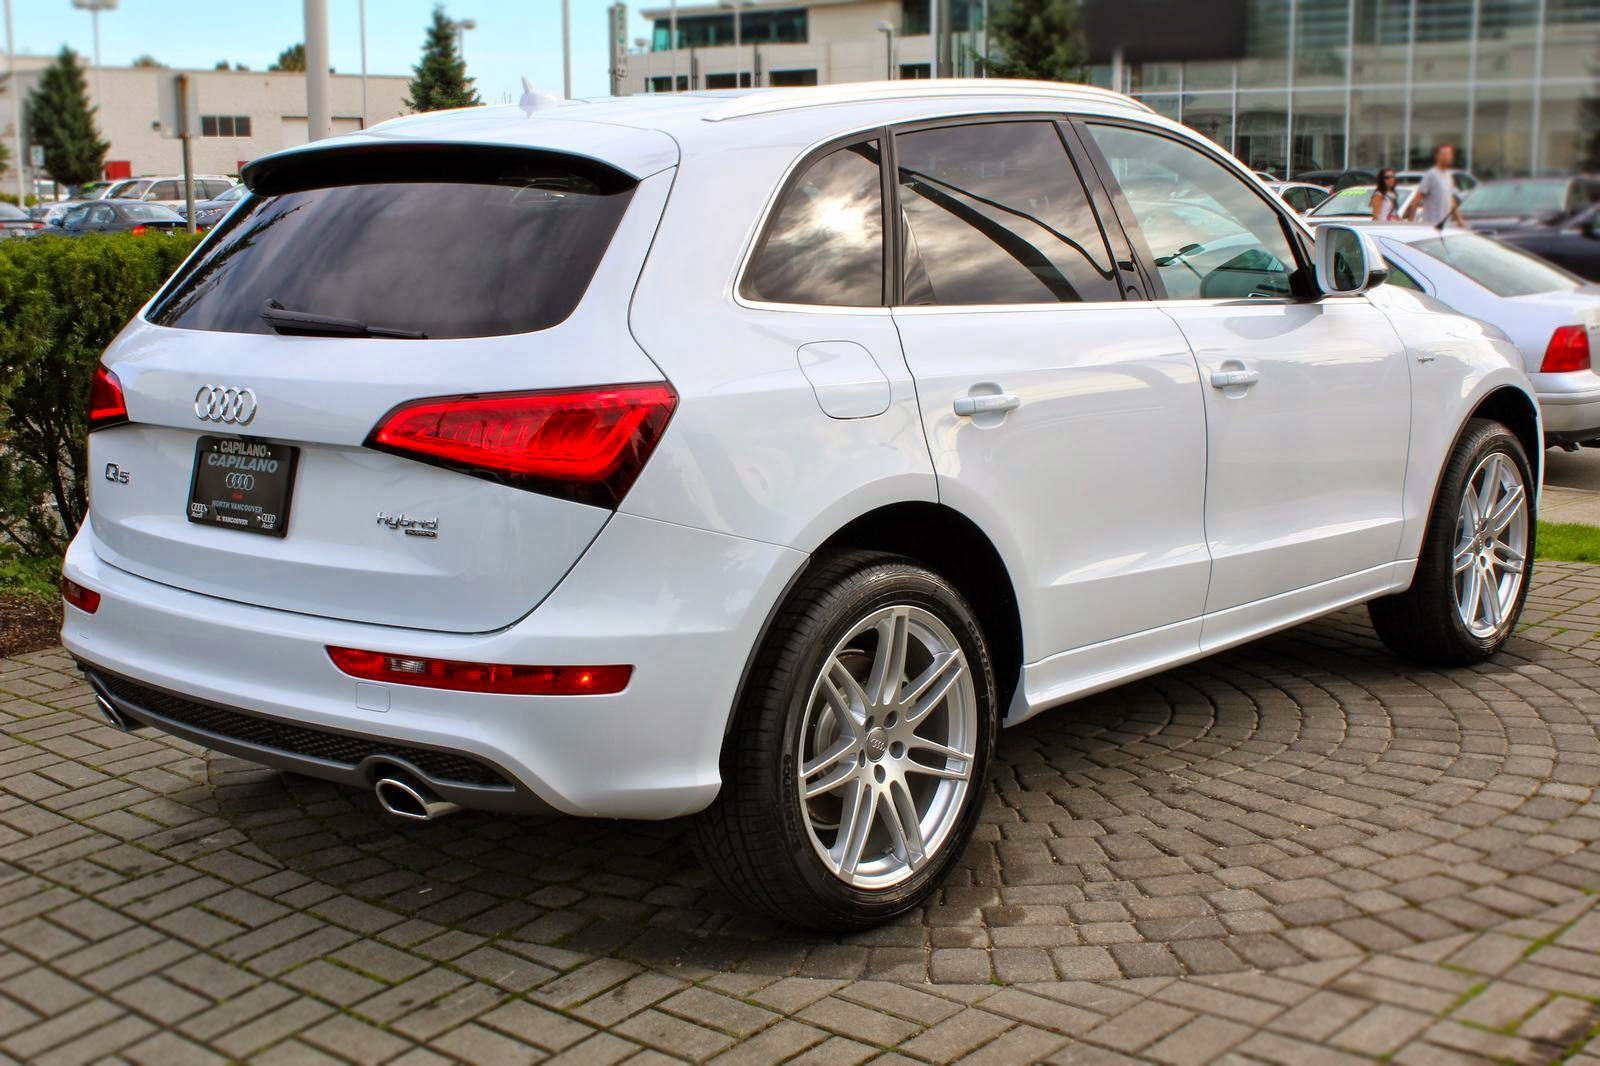 audi q5 motoring audi financial service q5 lease rate for. Black Bedroom Furniture Sets. Home Design Ideas